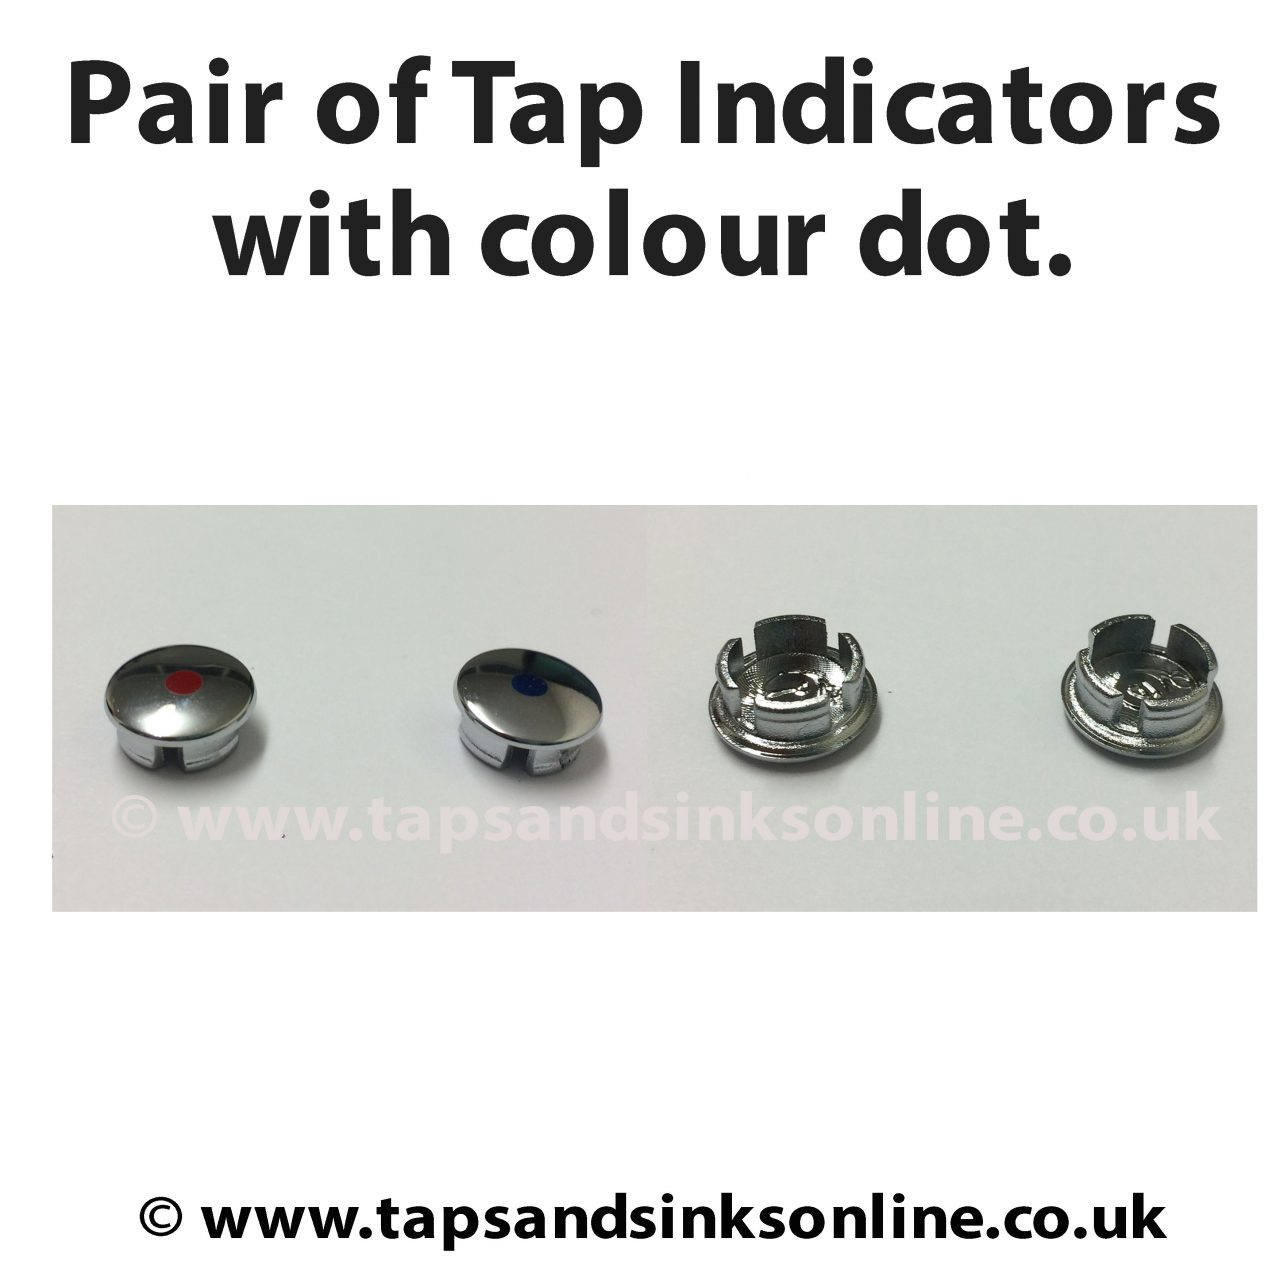 Franke Davos Tap Chrome Indicators Colour Dot | Franke Taps Parts ...